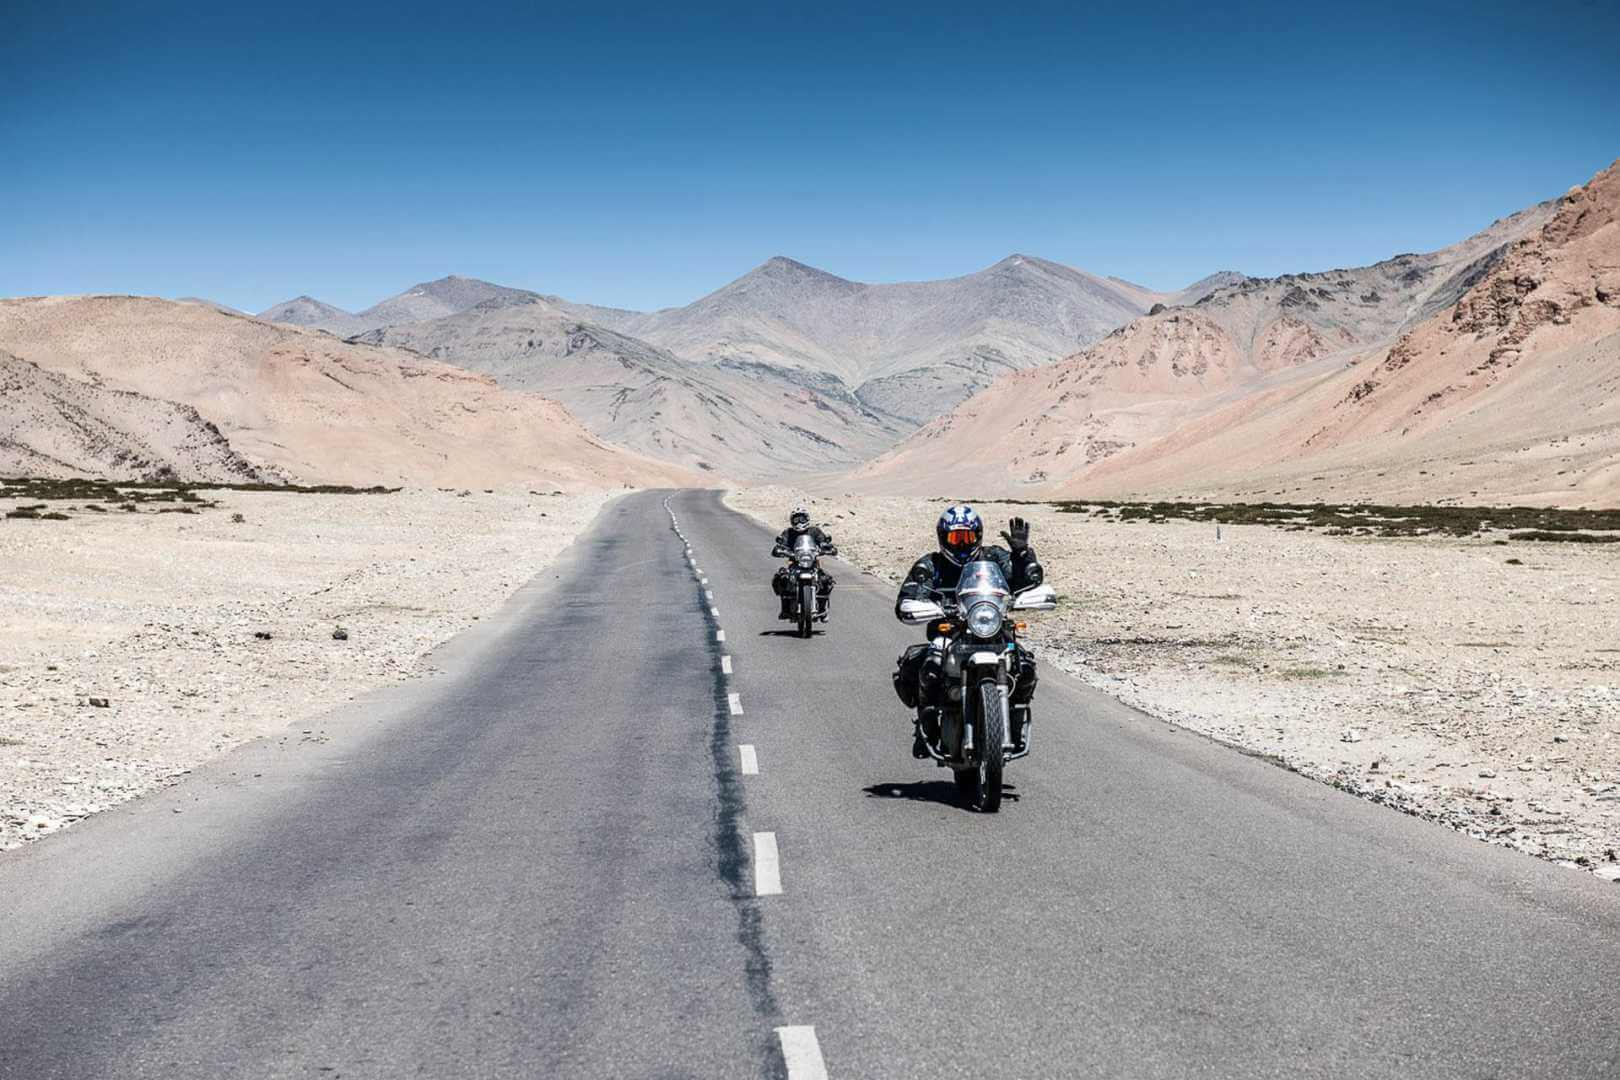 Motorcyclists in Indian Mountain range